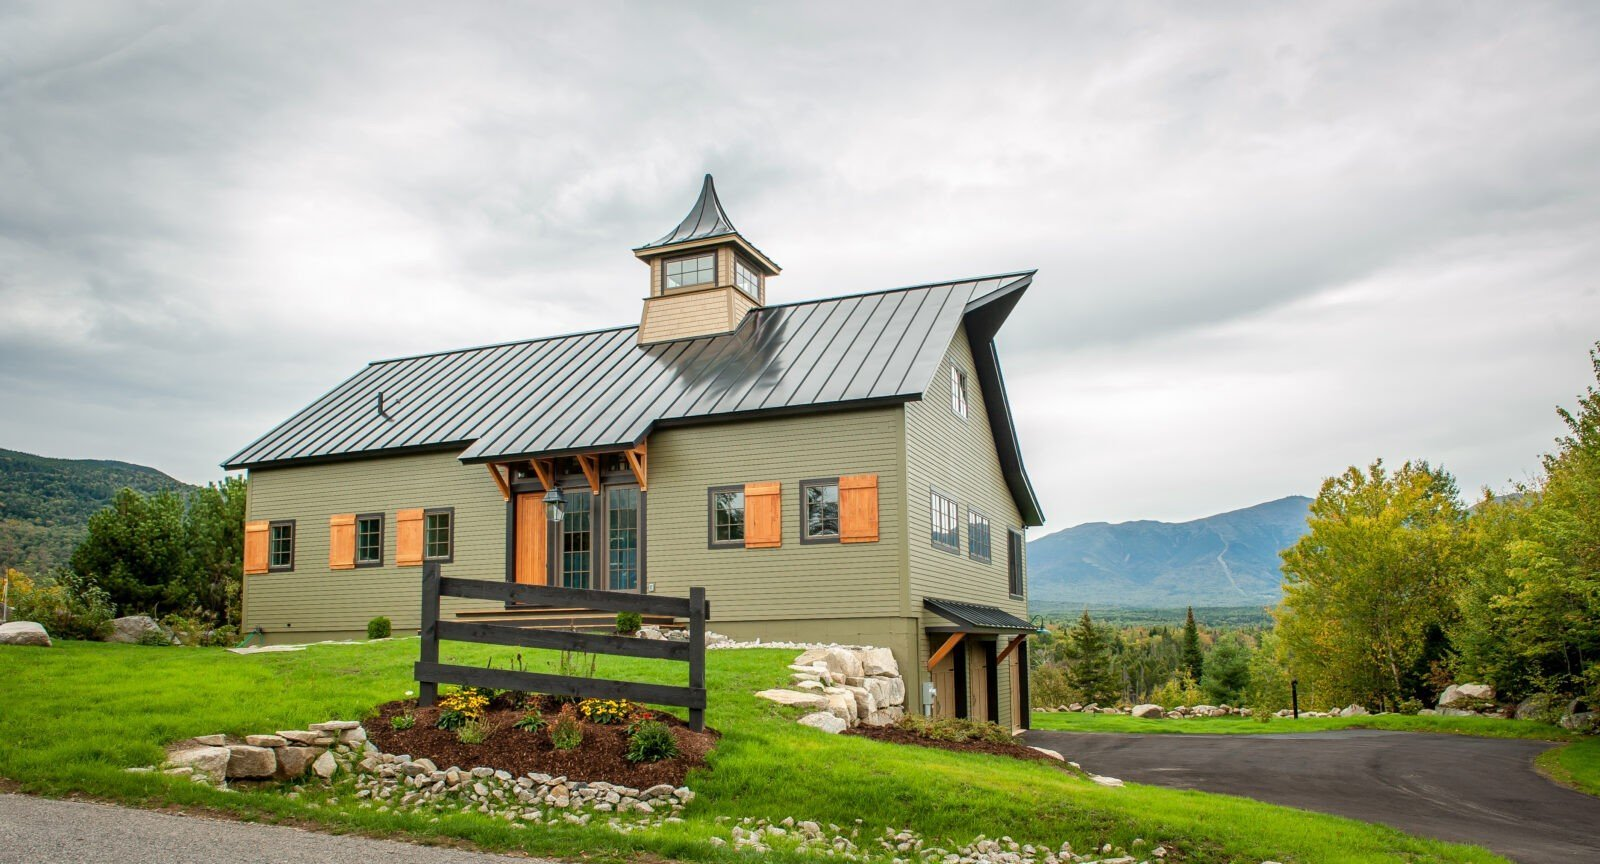 Top notch barn home plans from the ybh design team for Small metal barn homes